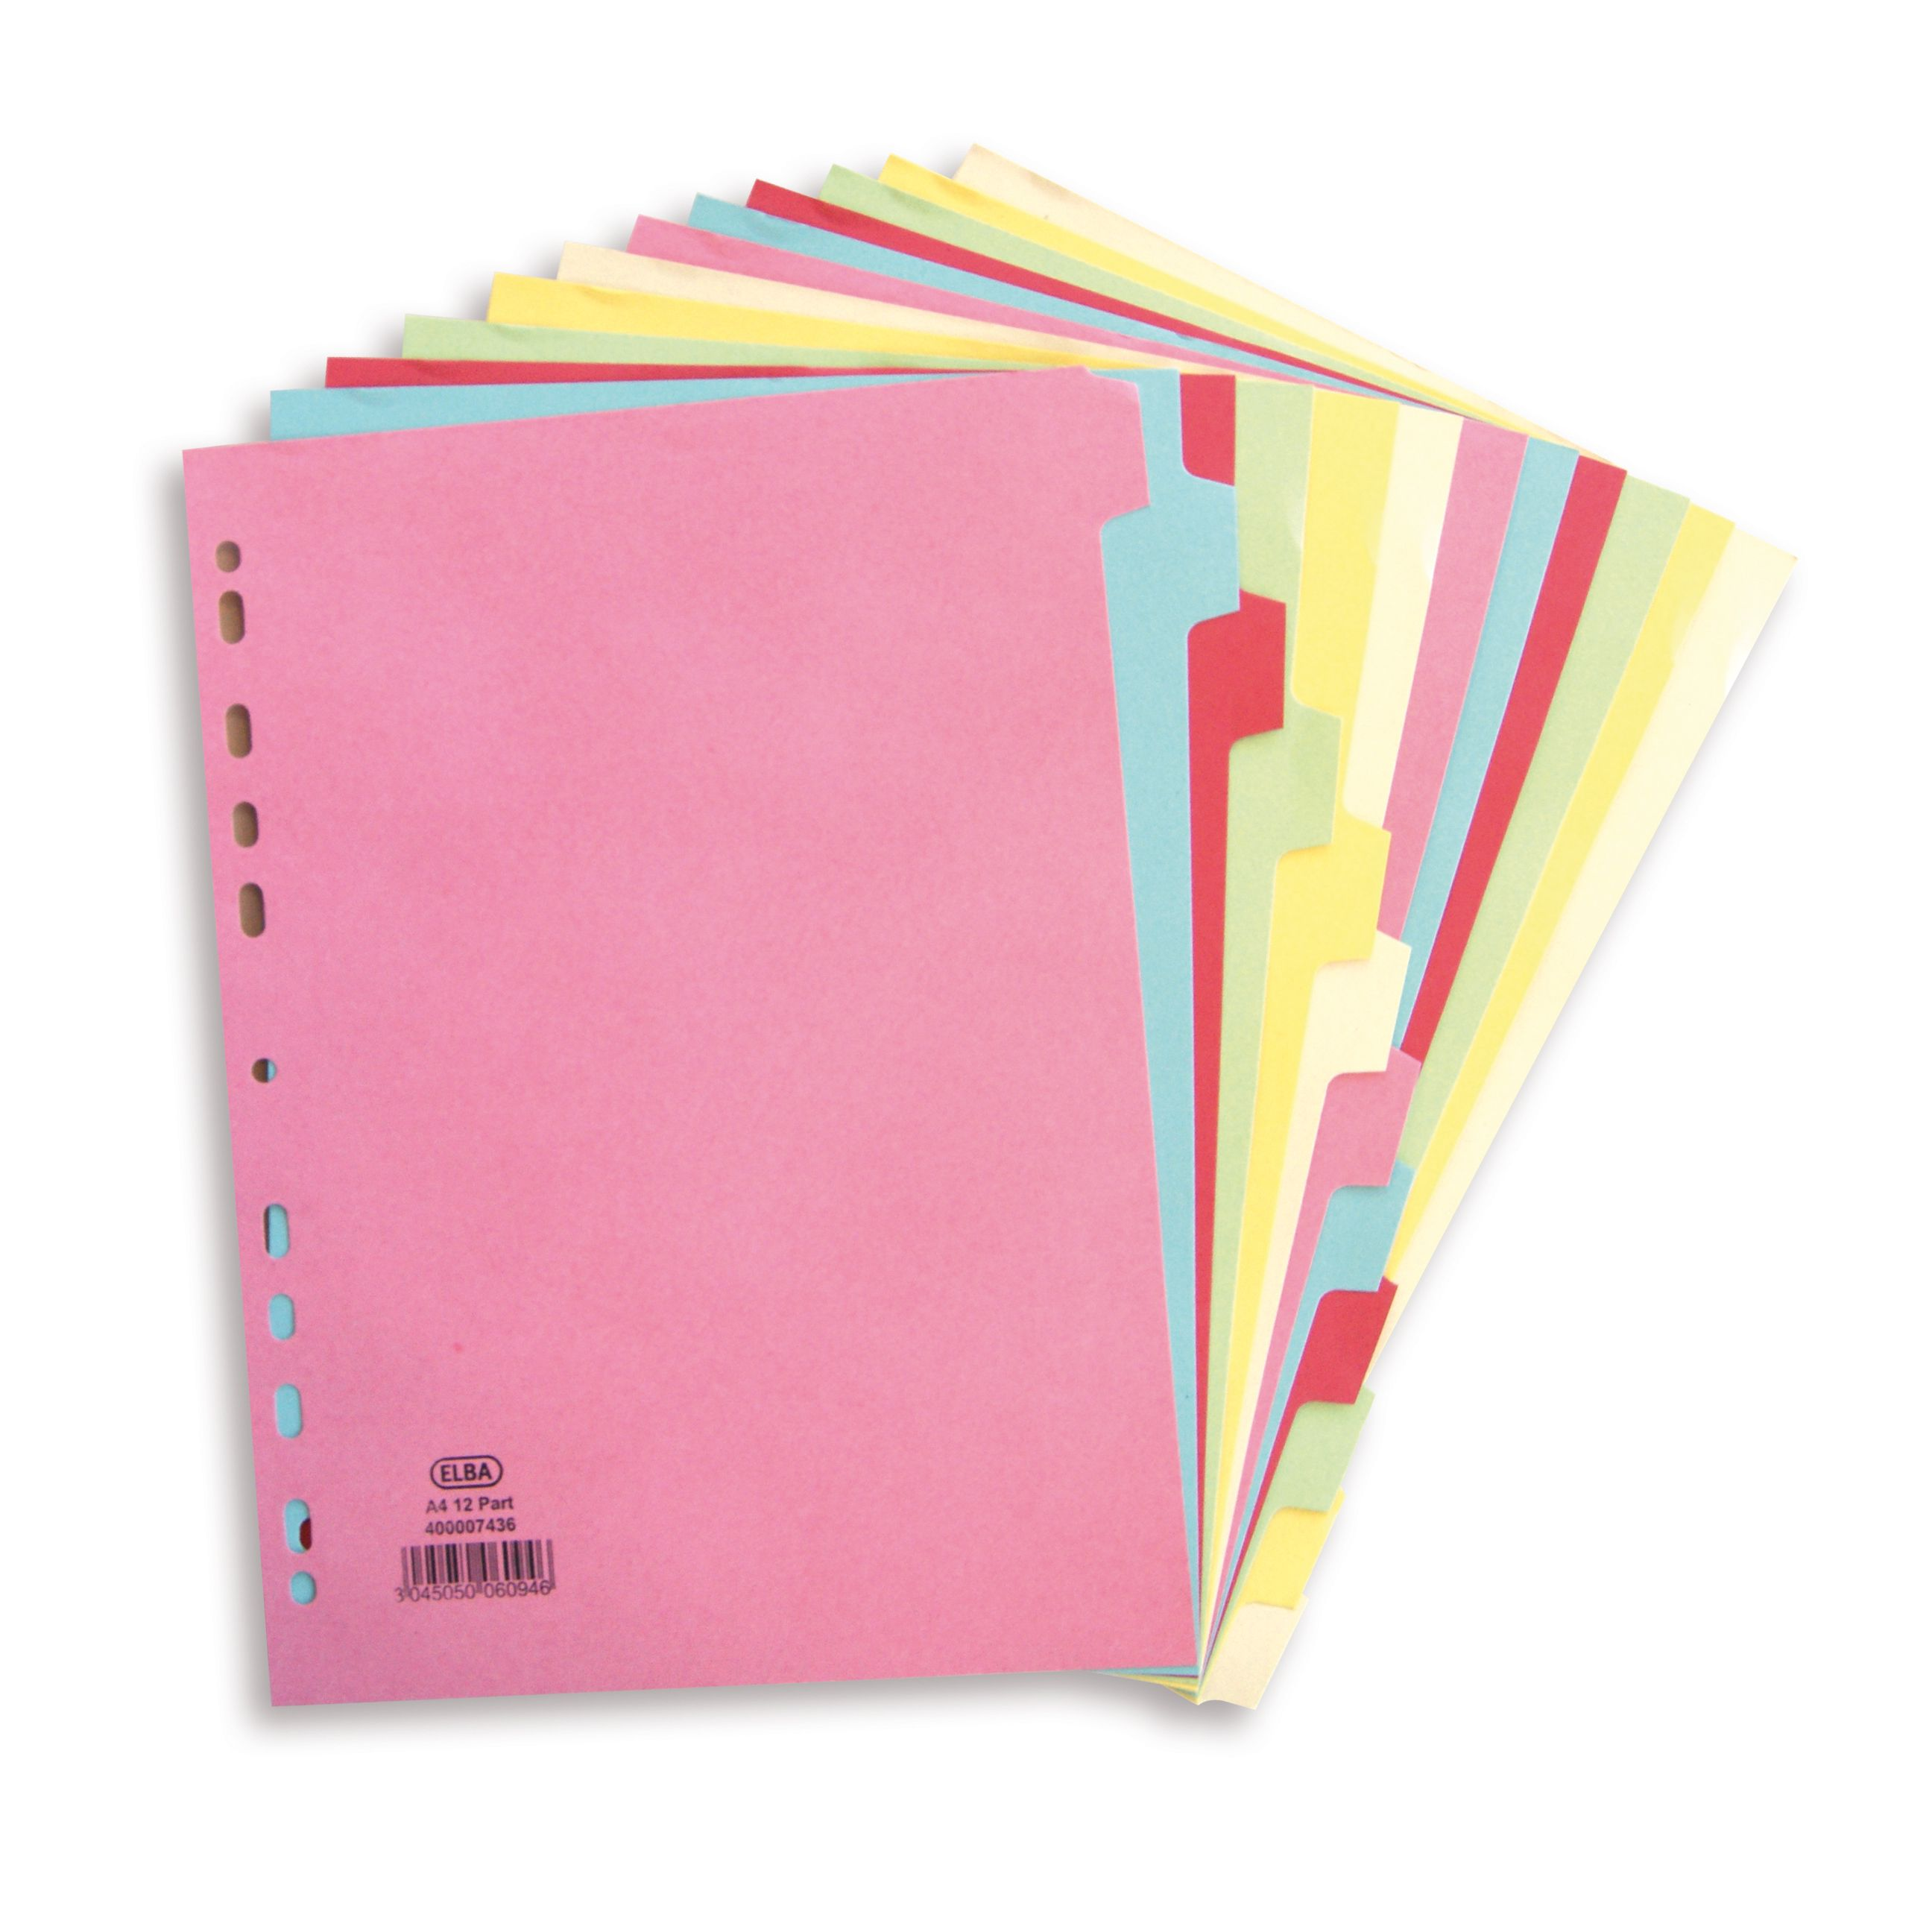 Elba Card Dividers Europunched 12-Part A4 Assorted Ref 400007436